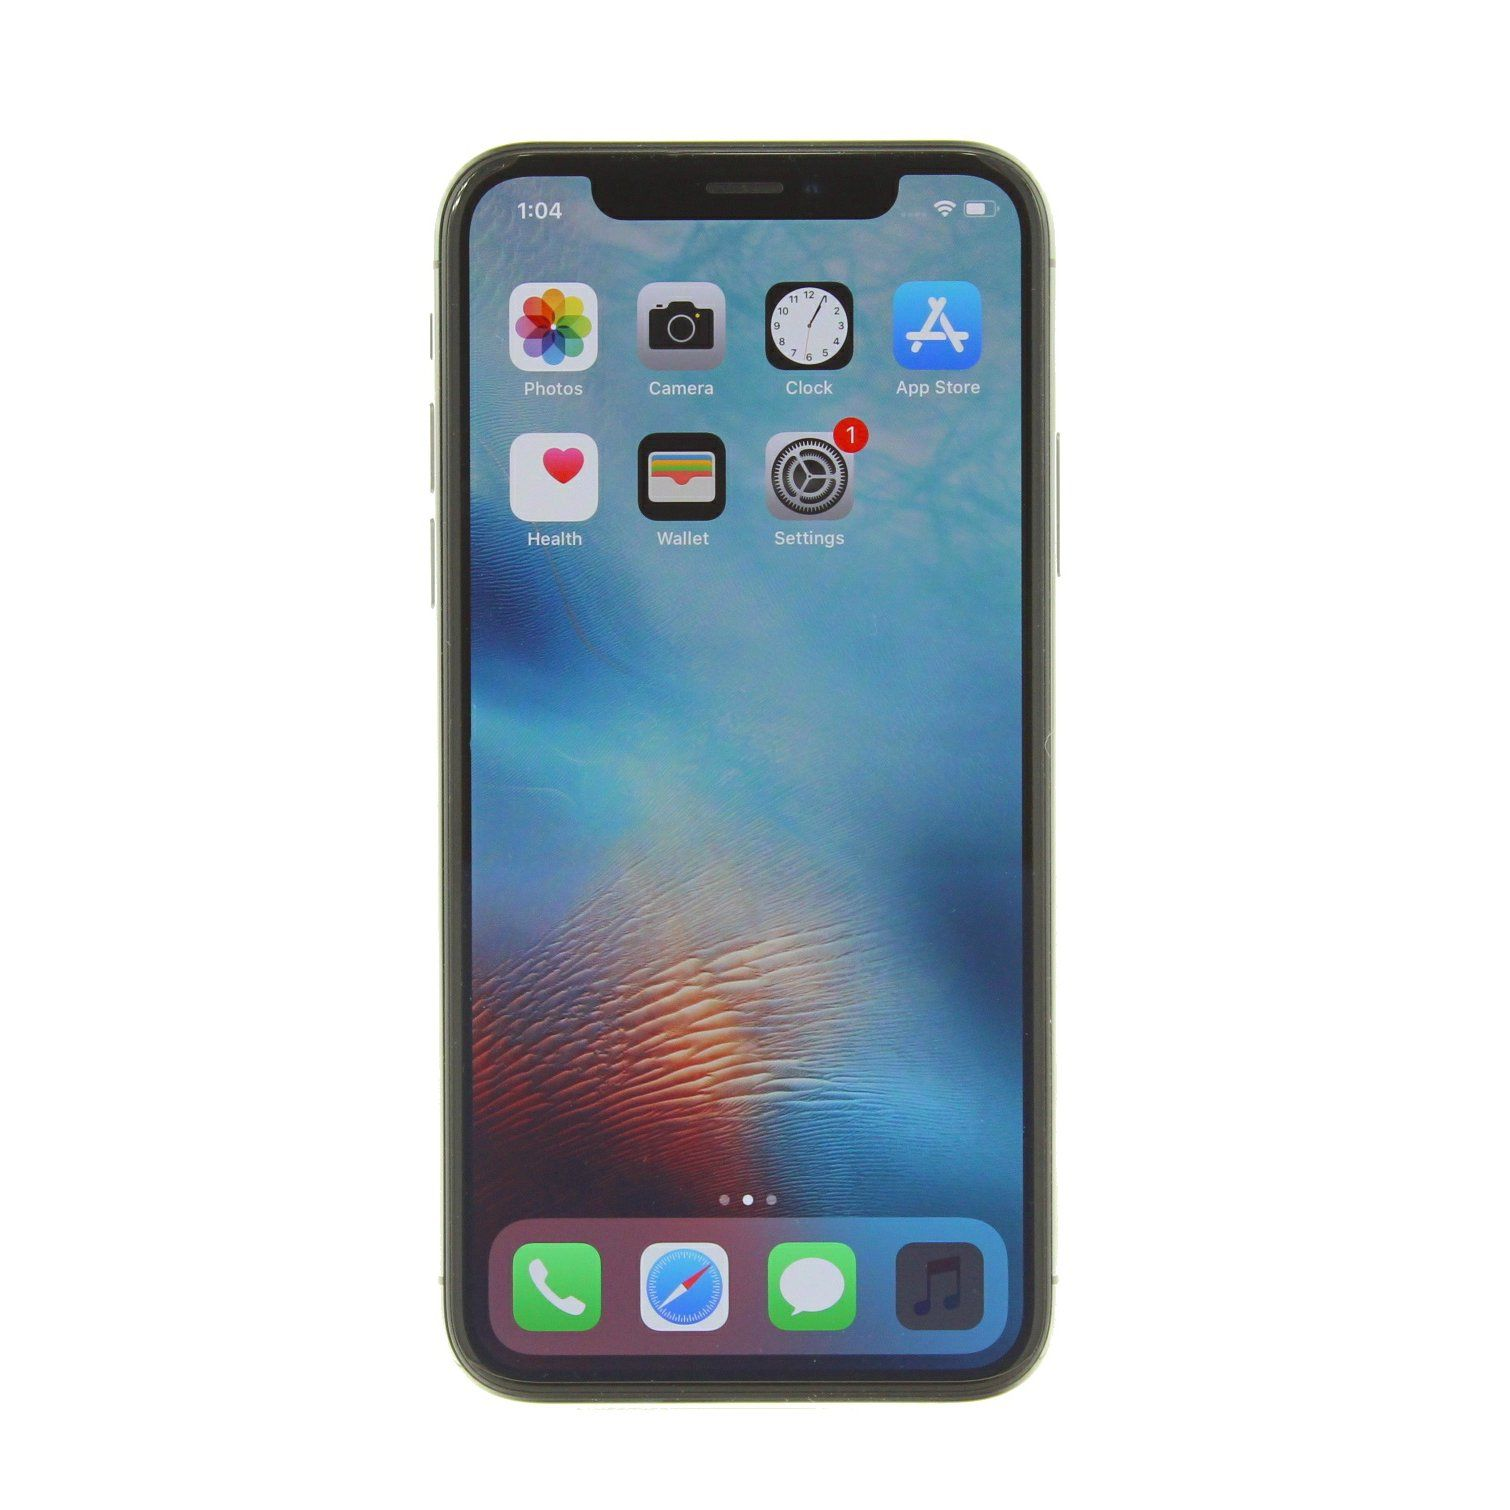 Apple iPhone X a1901 256GB for at&T (Refurbished) https